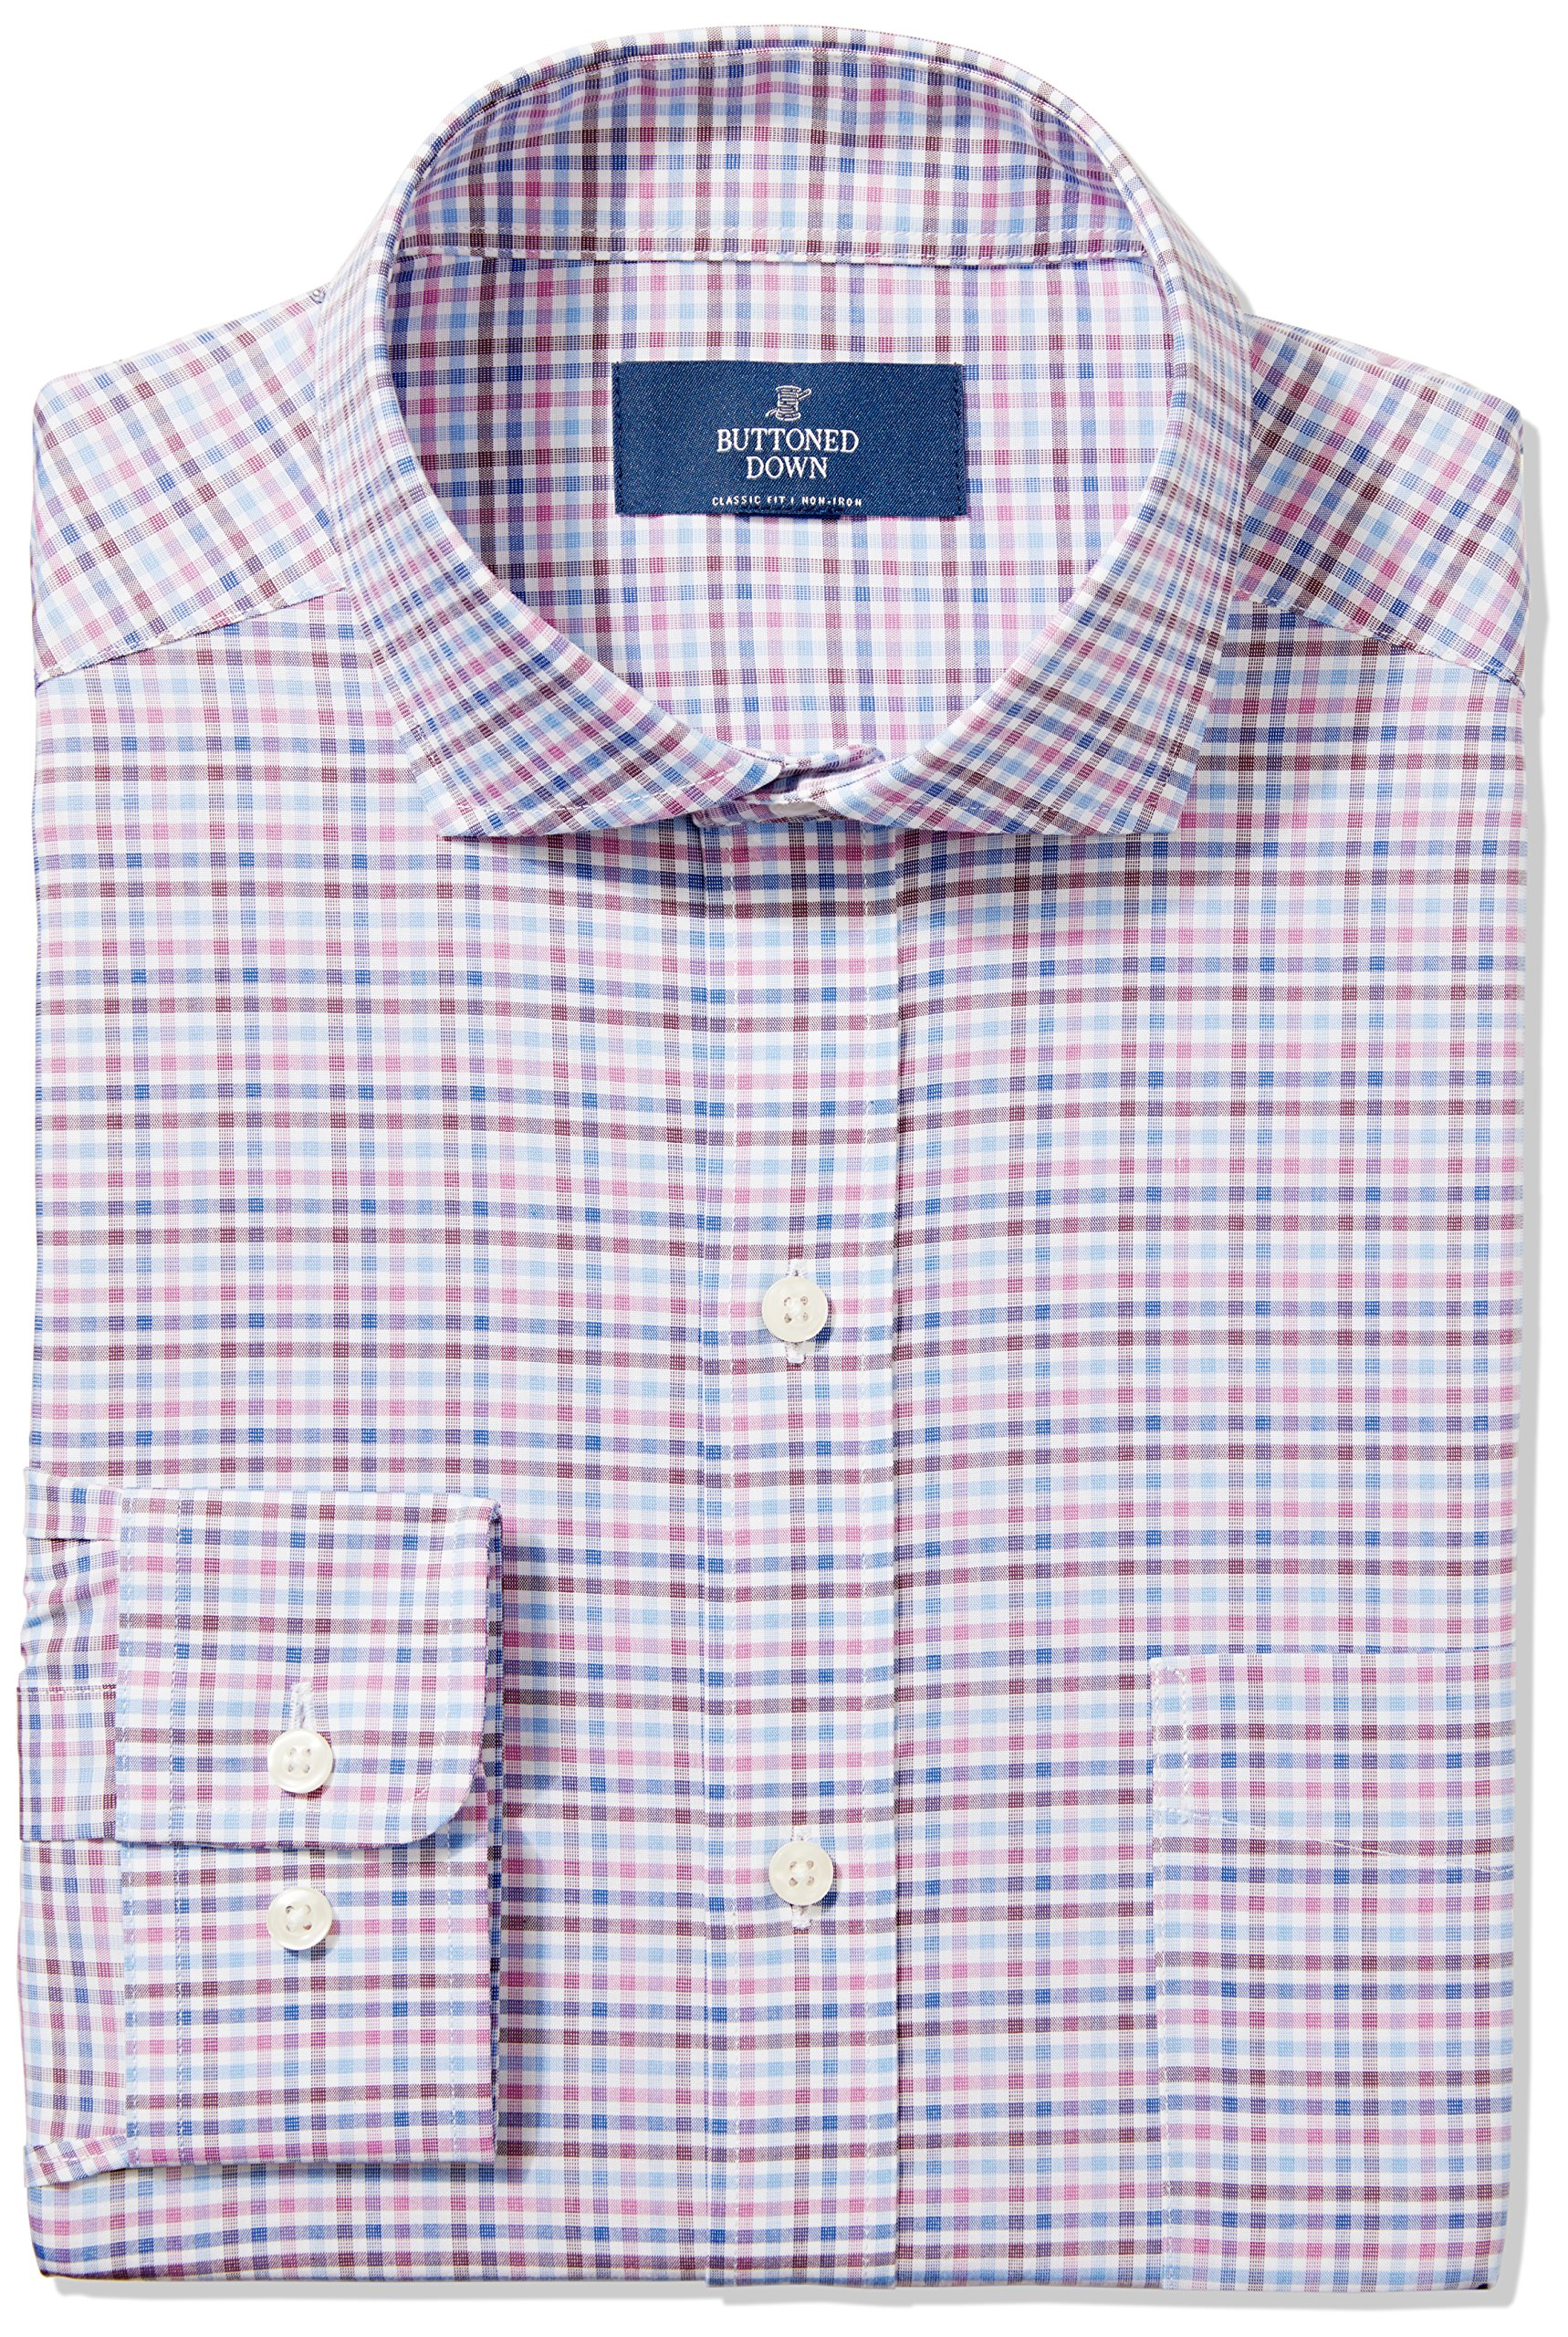 Buttoned Down Men's Classic Fit Cutaway-Collar Non-Iron Dress Shirt, Berry/Blue/Navy Check, 18'' Neck 35'' Sleeve (Big and Tall)